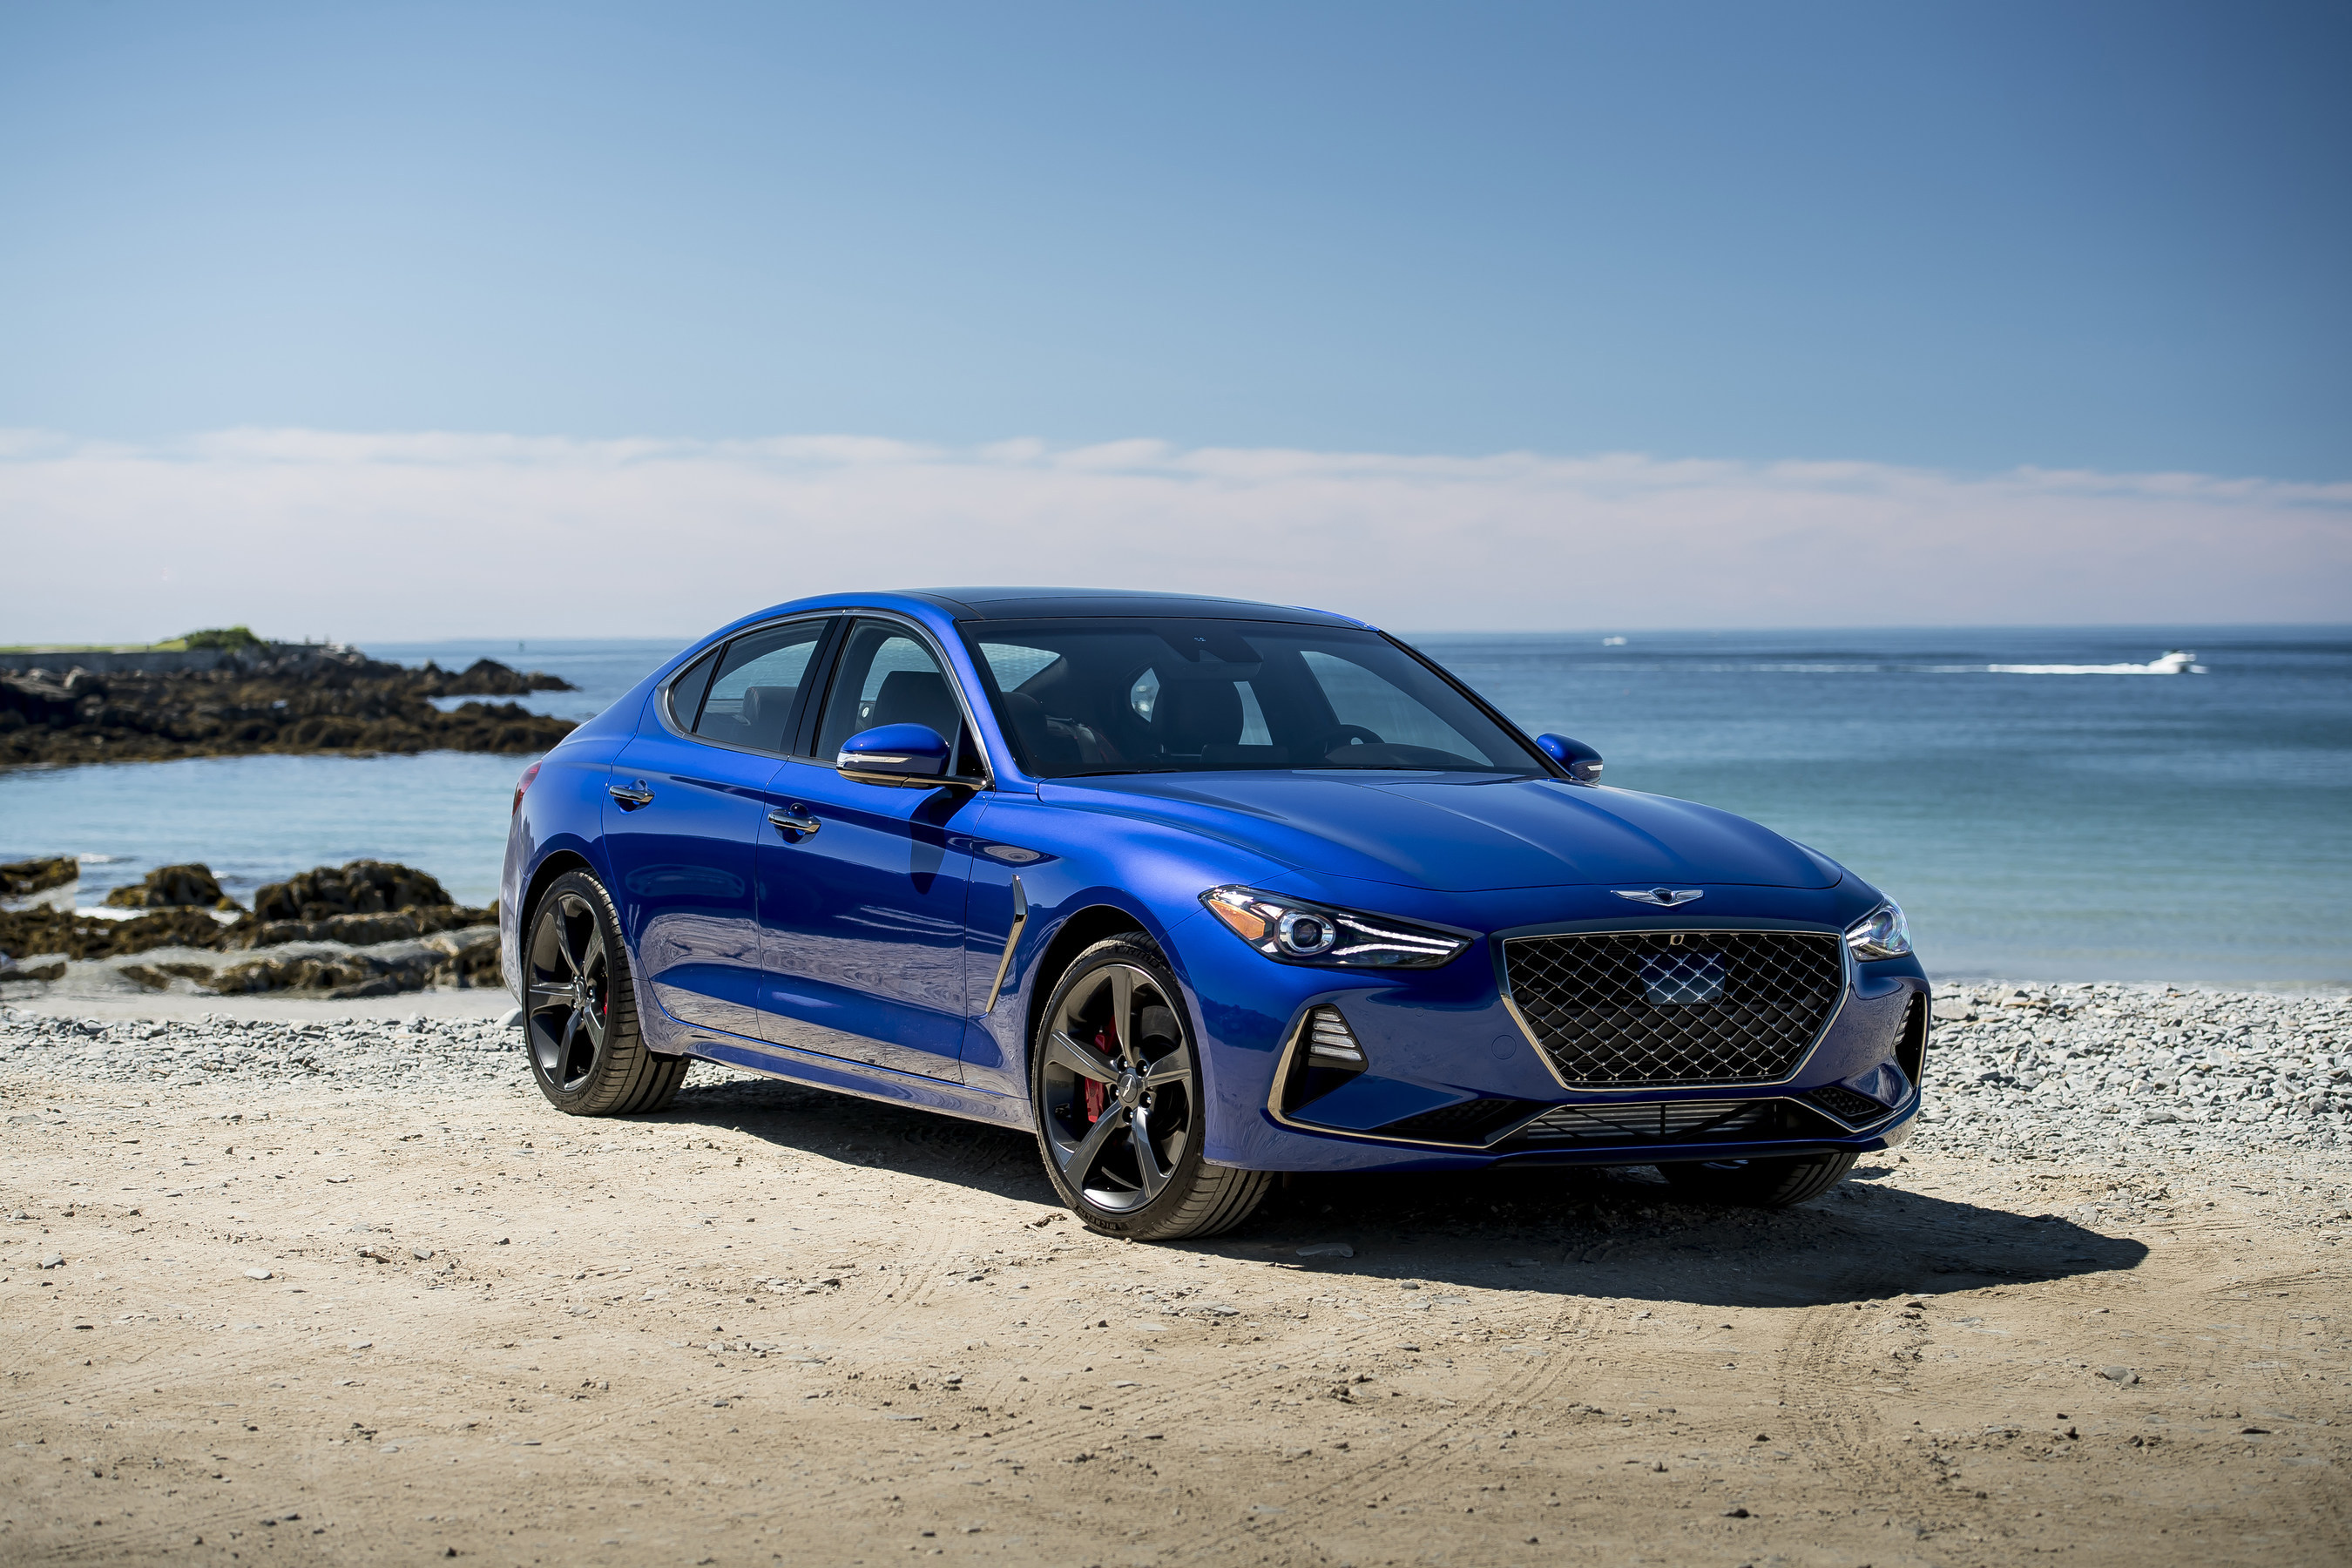 genesis g70 named 2019 motor trend car of the year – picante today